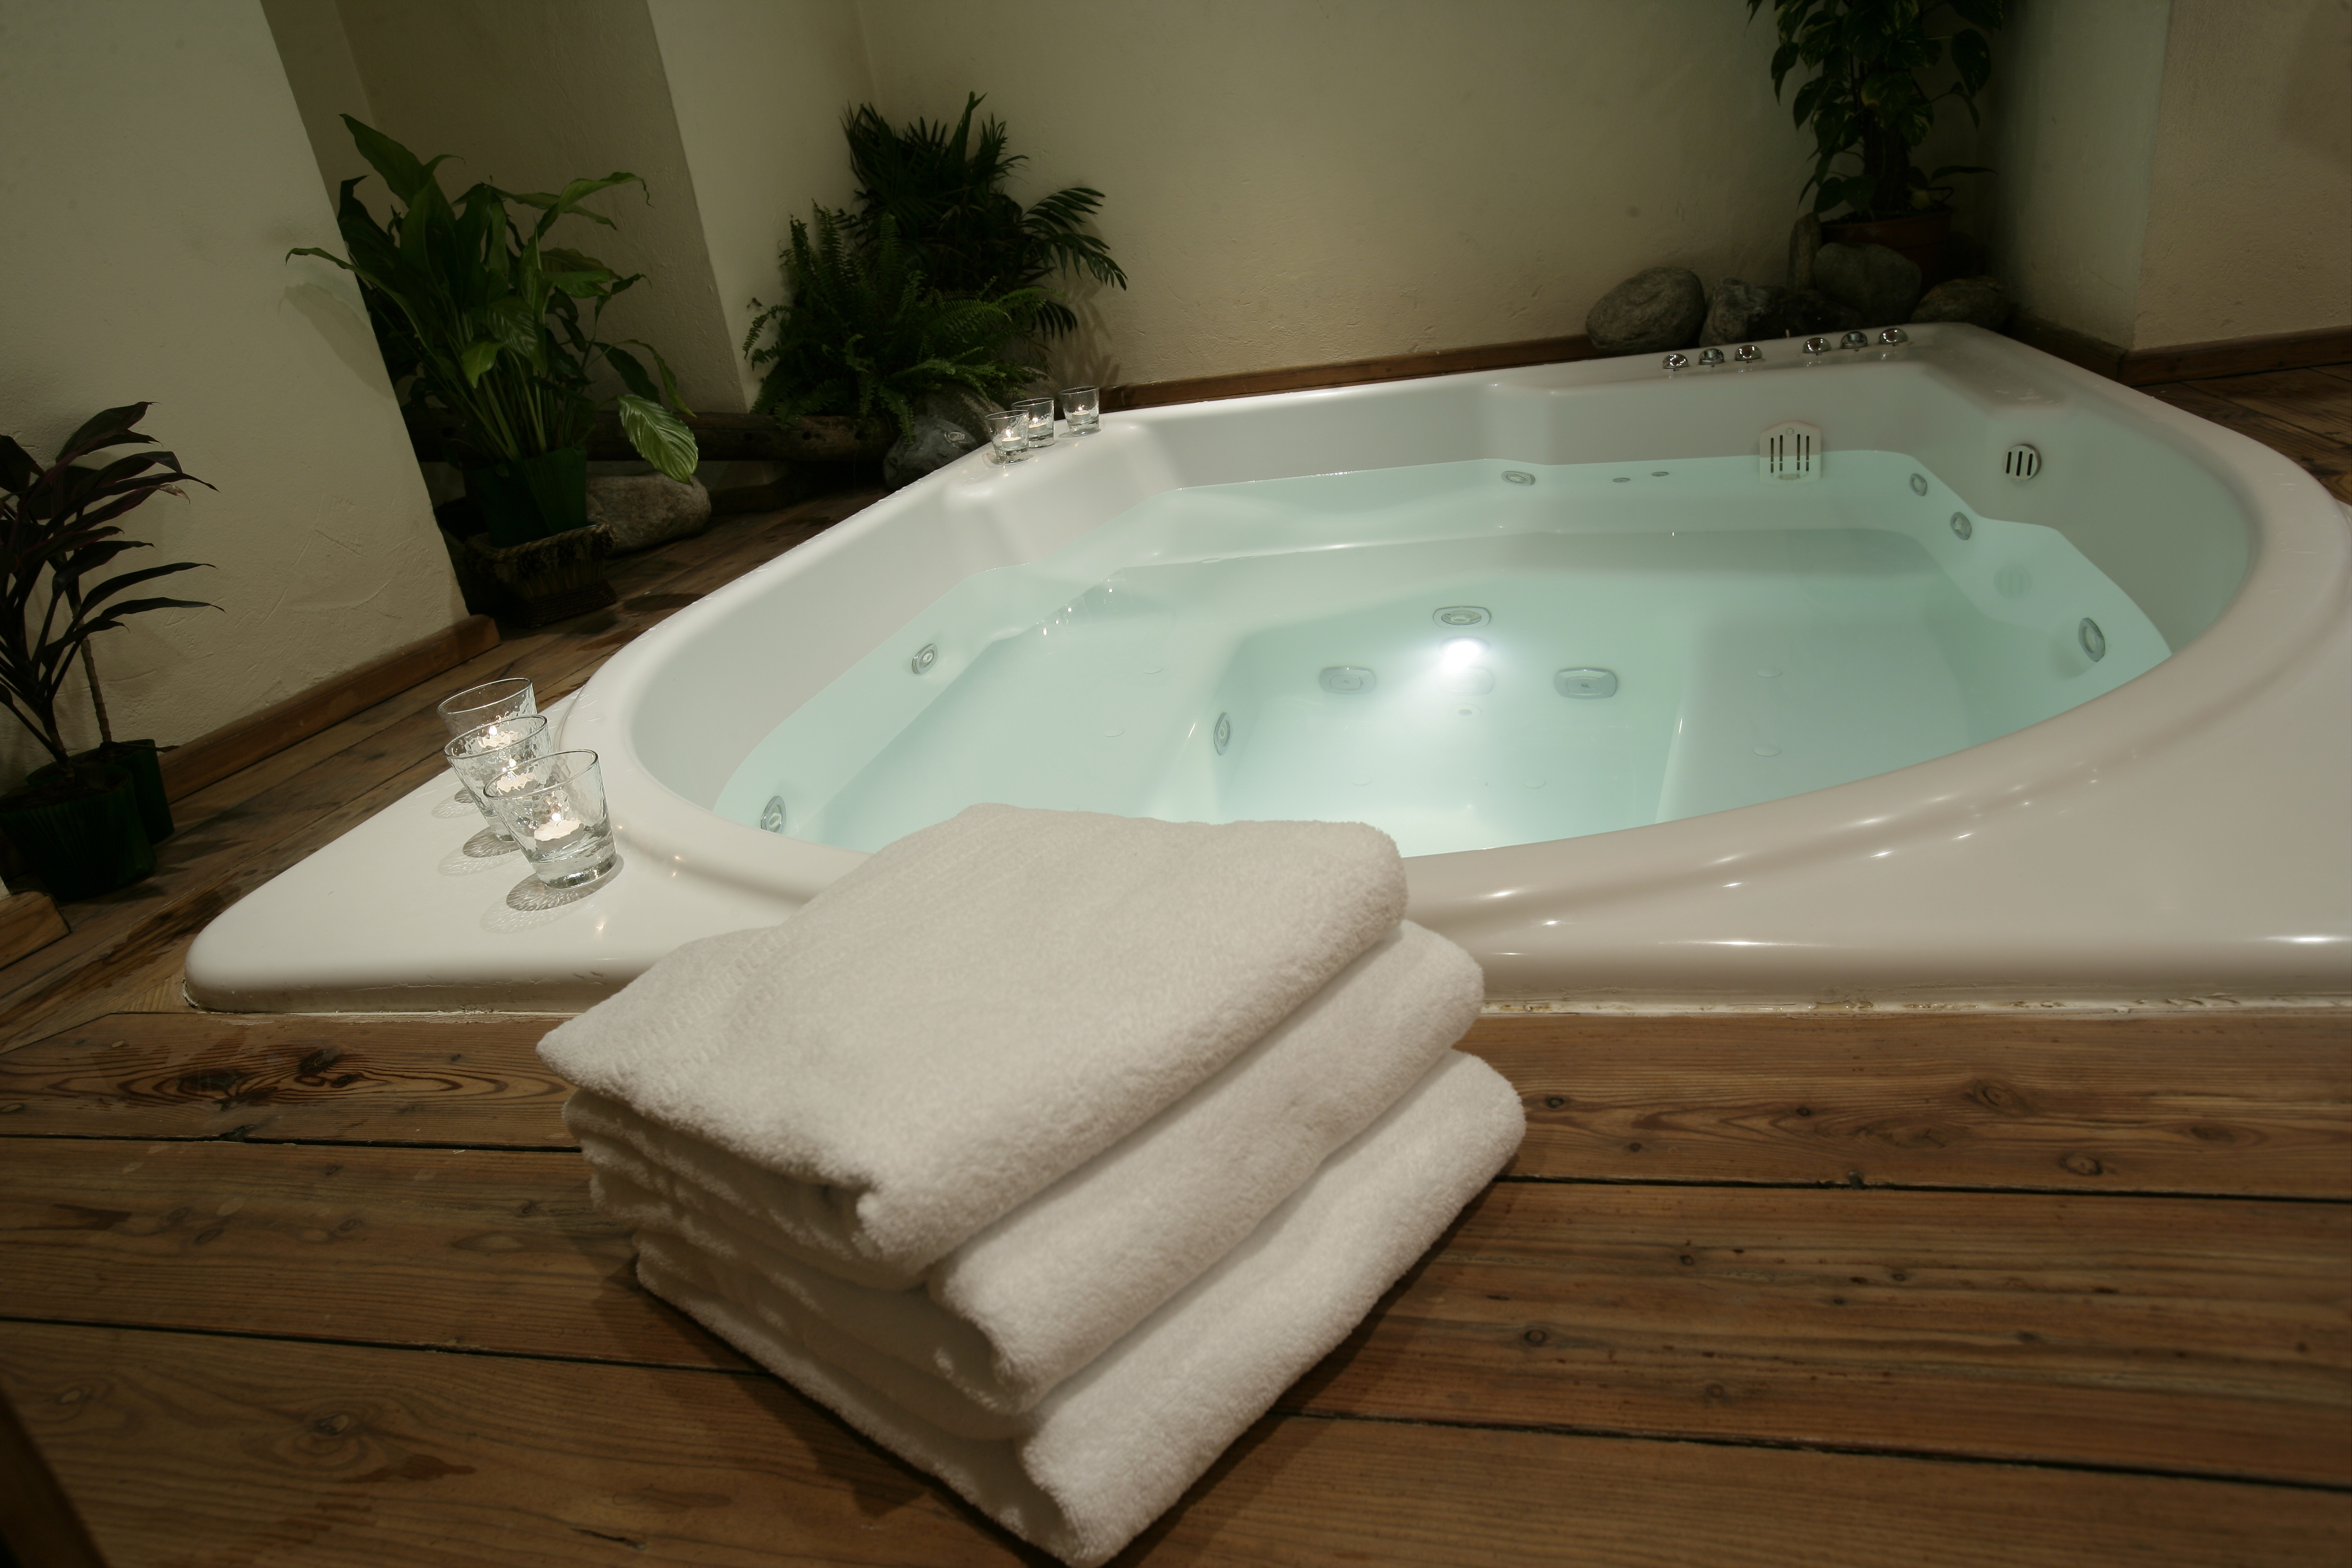 How to Clean Jacuzzi Tub Jets